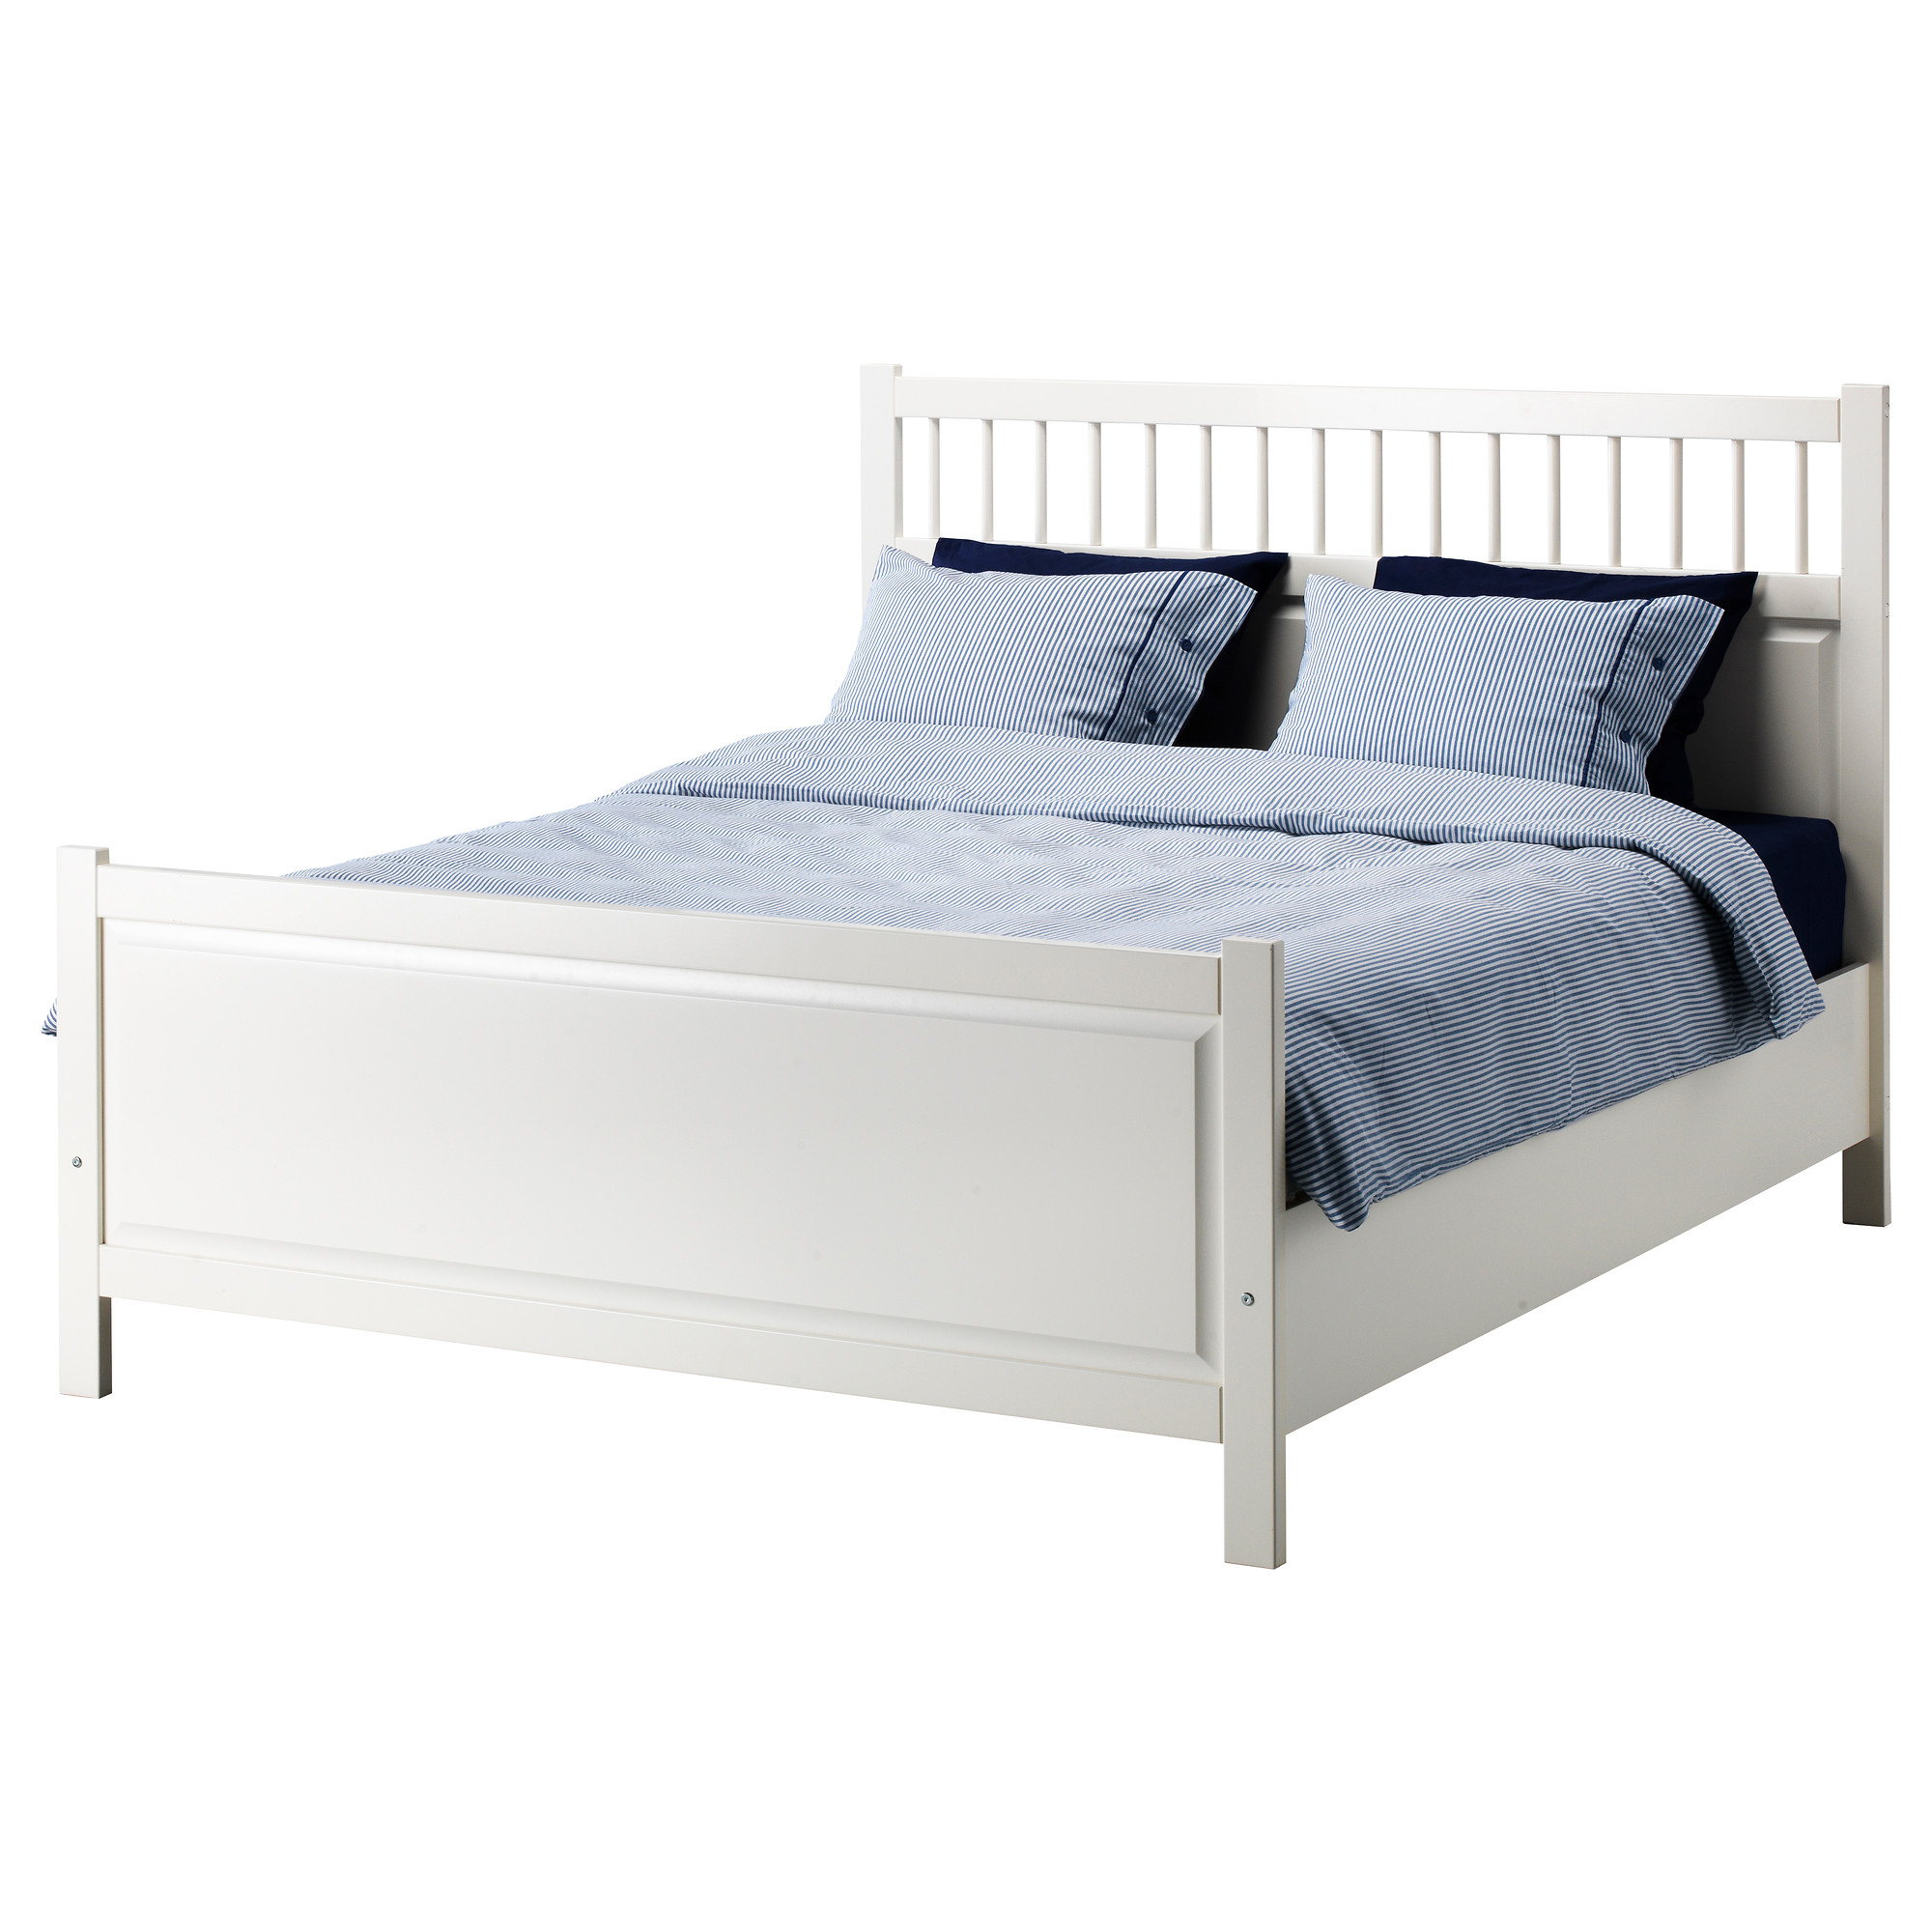 Ikea King Platform Bed